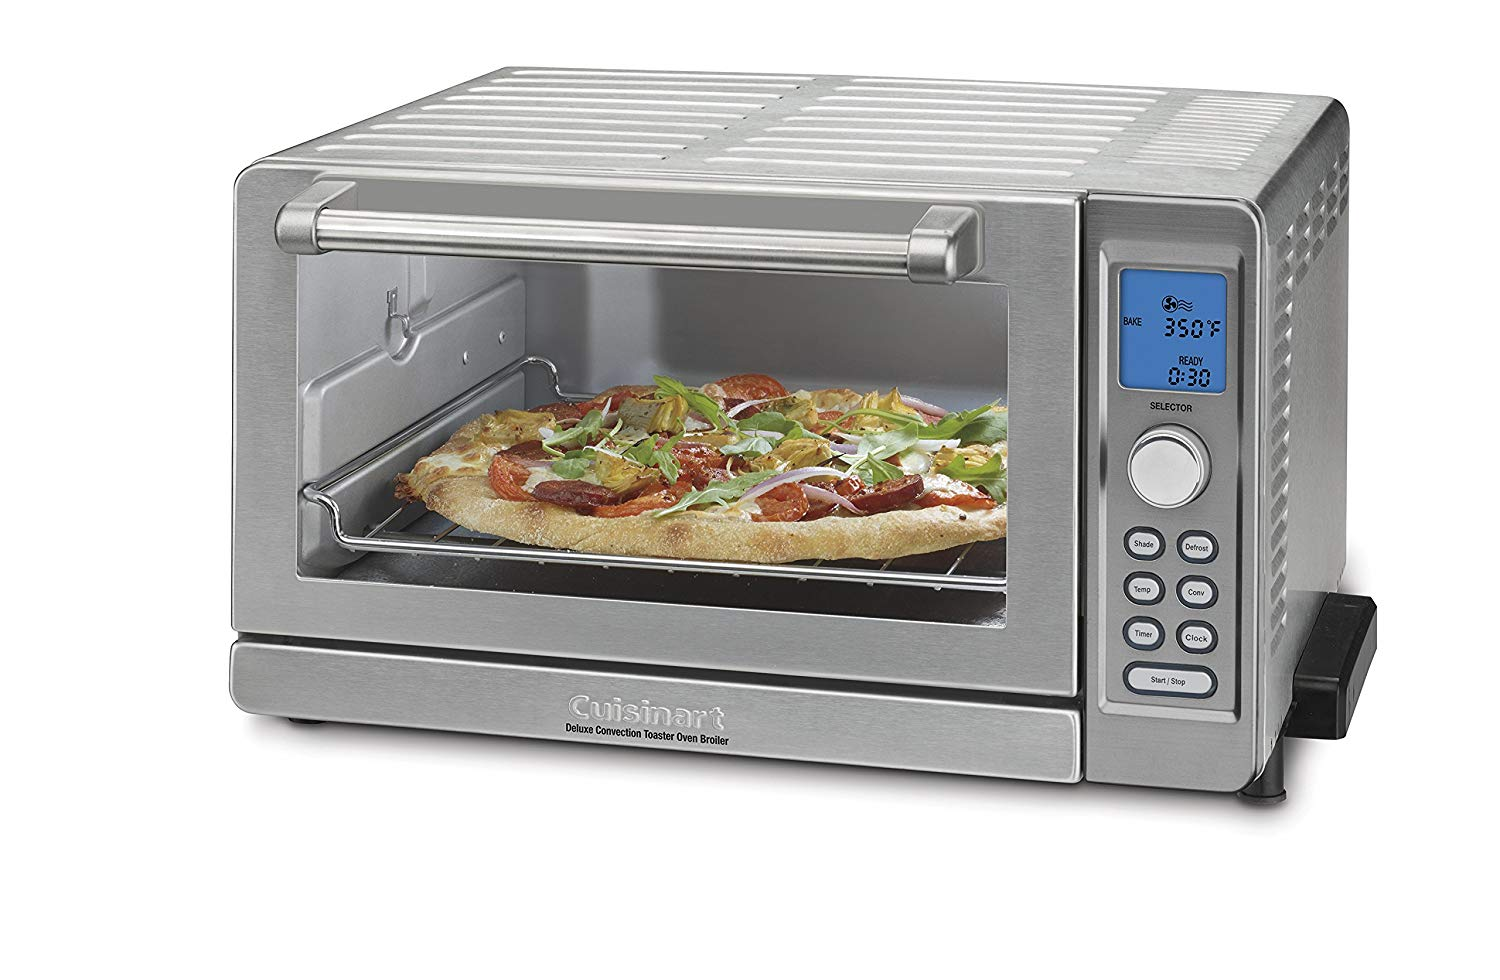 Cuisinart deluxe convection